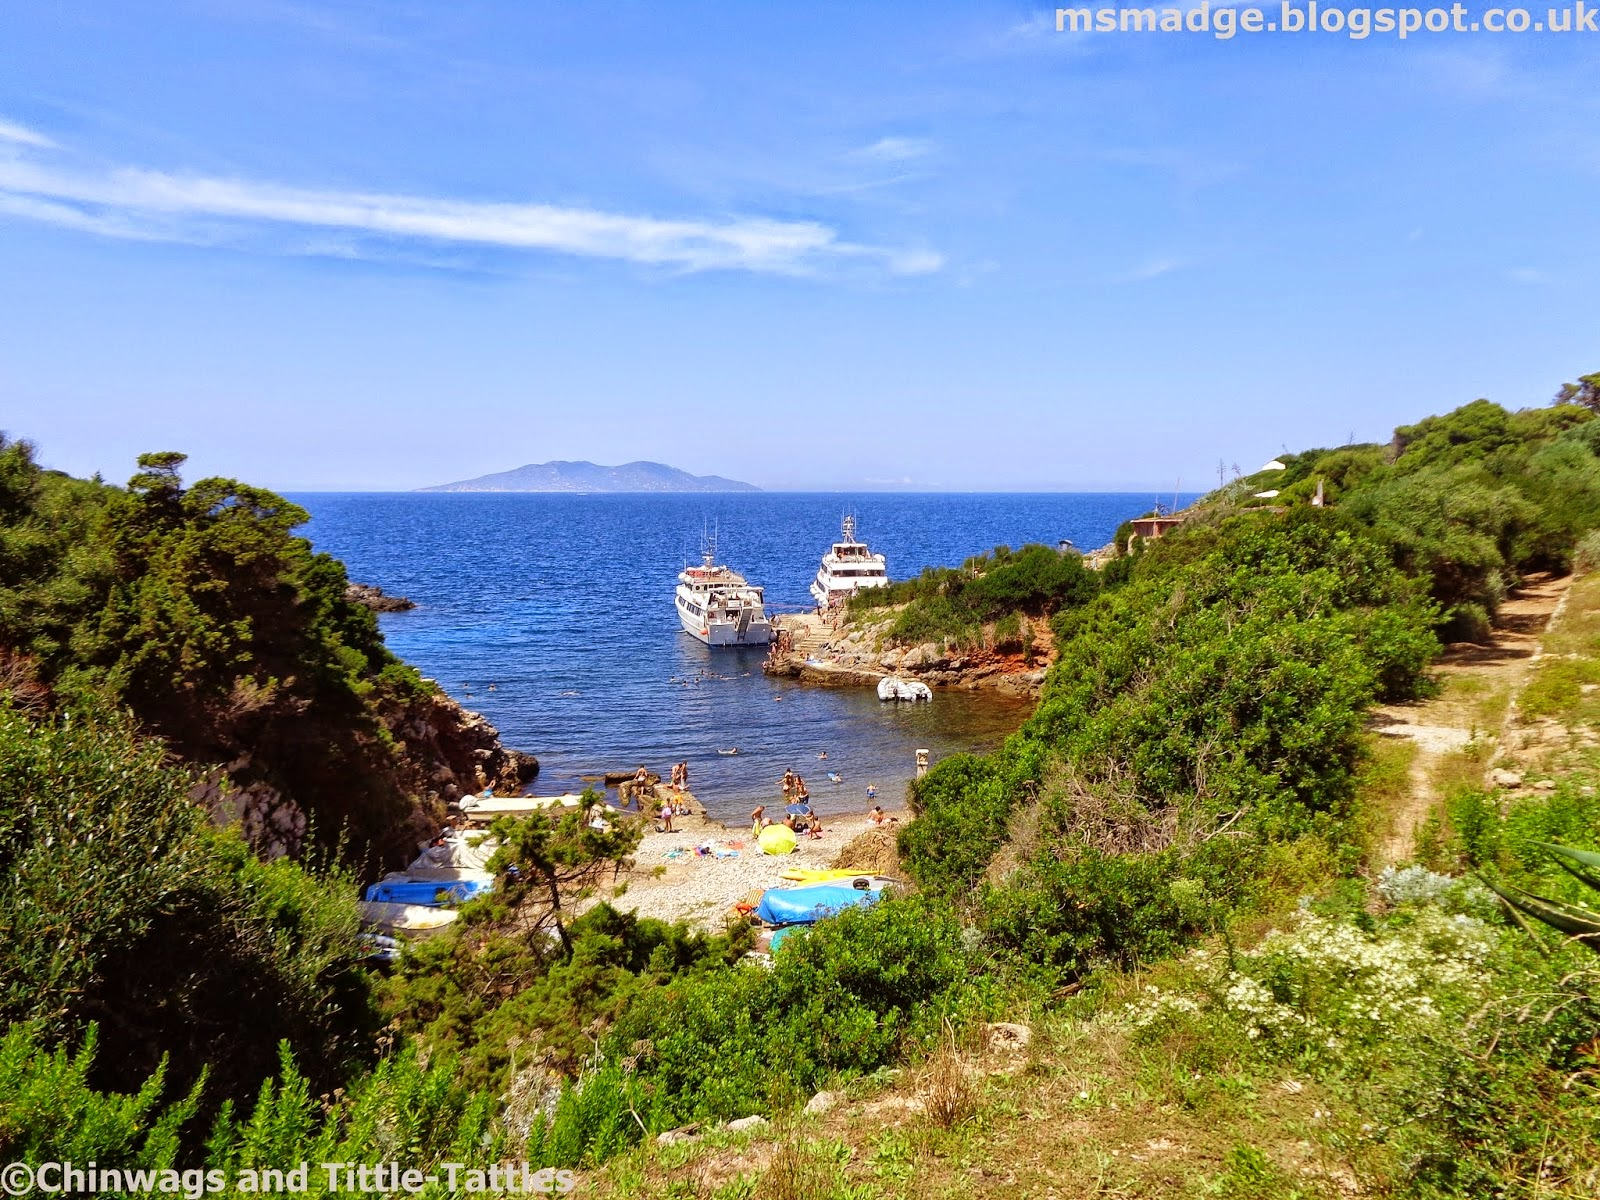 http://msmadge.blogspot.co.uk/2014/08/nature-tripping-at-giannutri-island.html